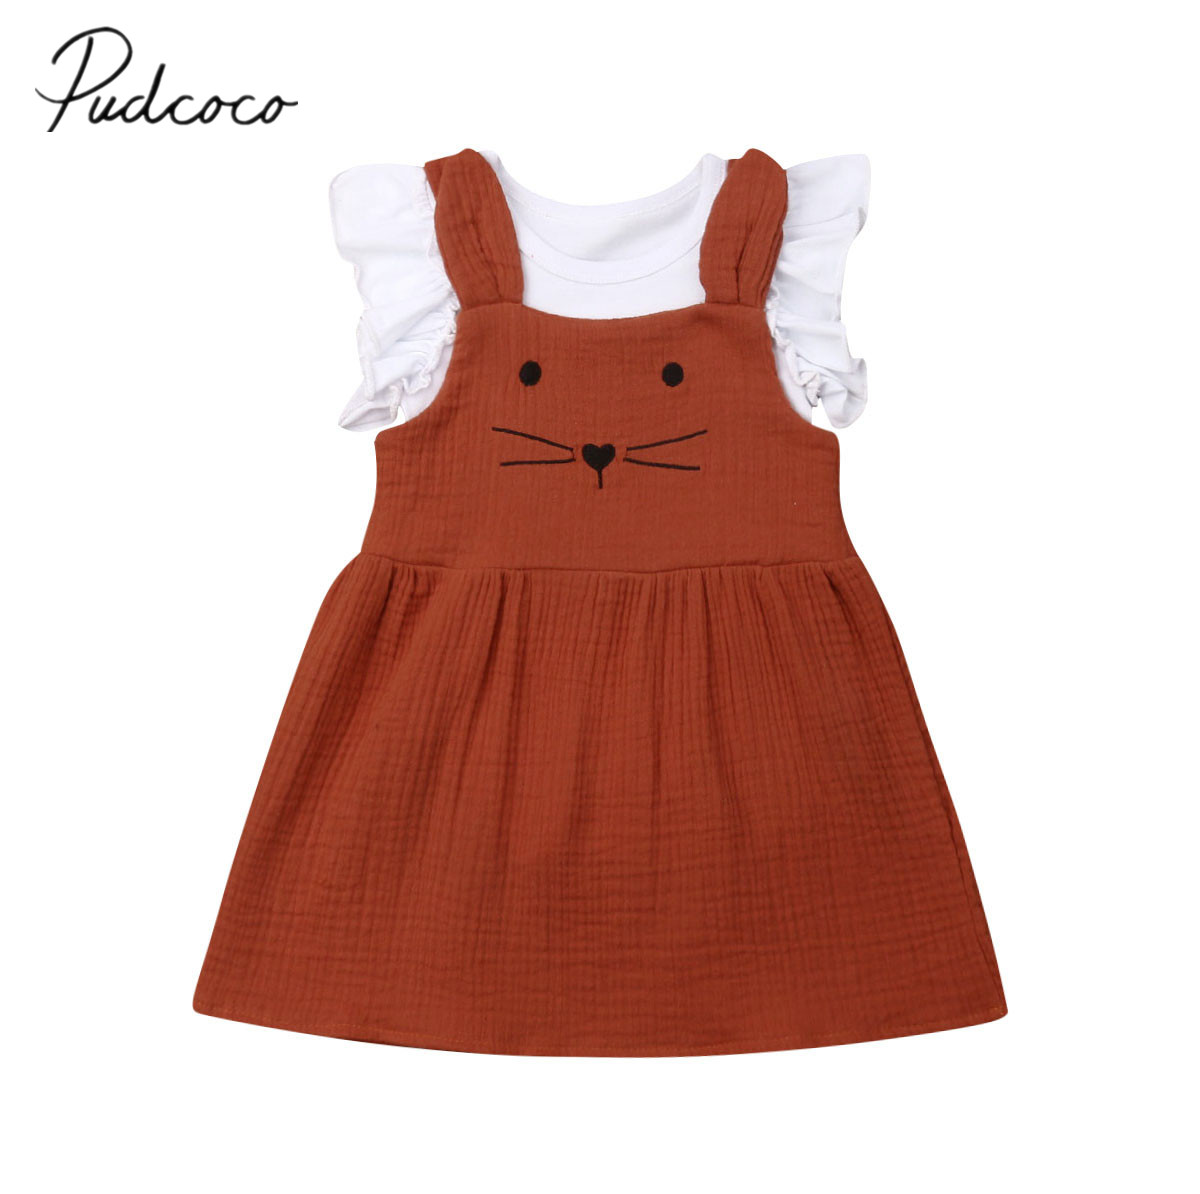 fa4937e2455f1 2019 Baby Summer Clothing 0-24M Newborn Infant Baby Girls Clothes Sets  Ruffle Romper Tops